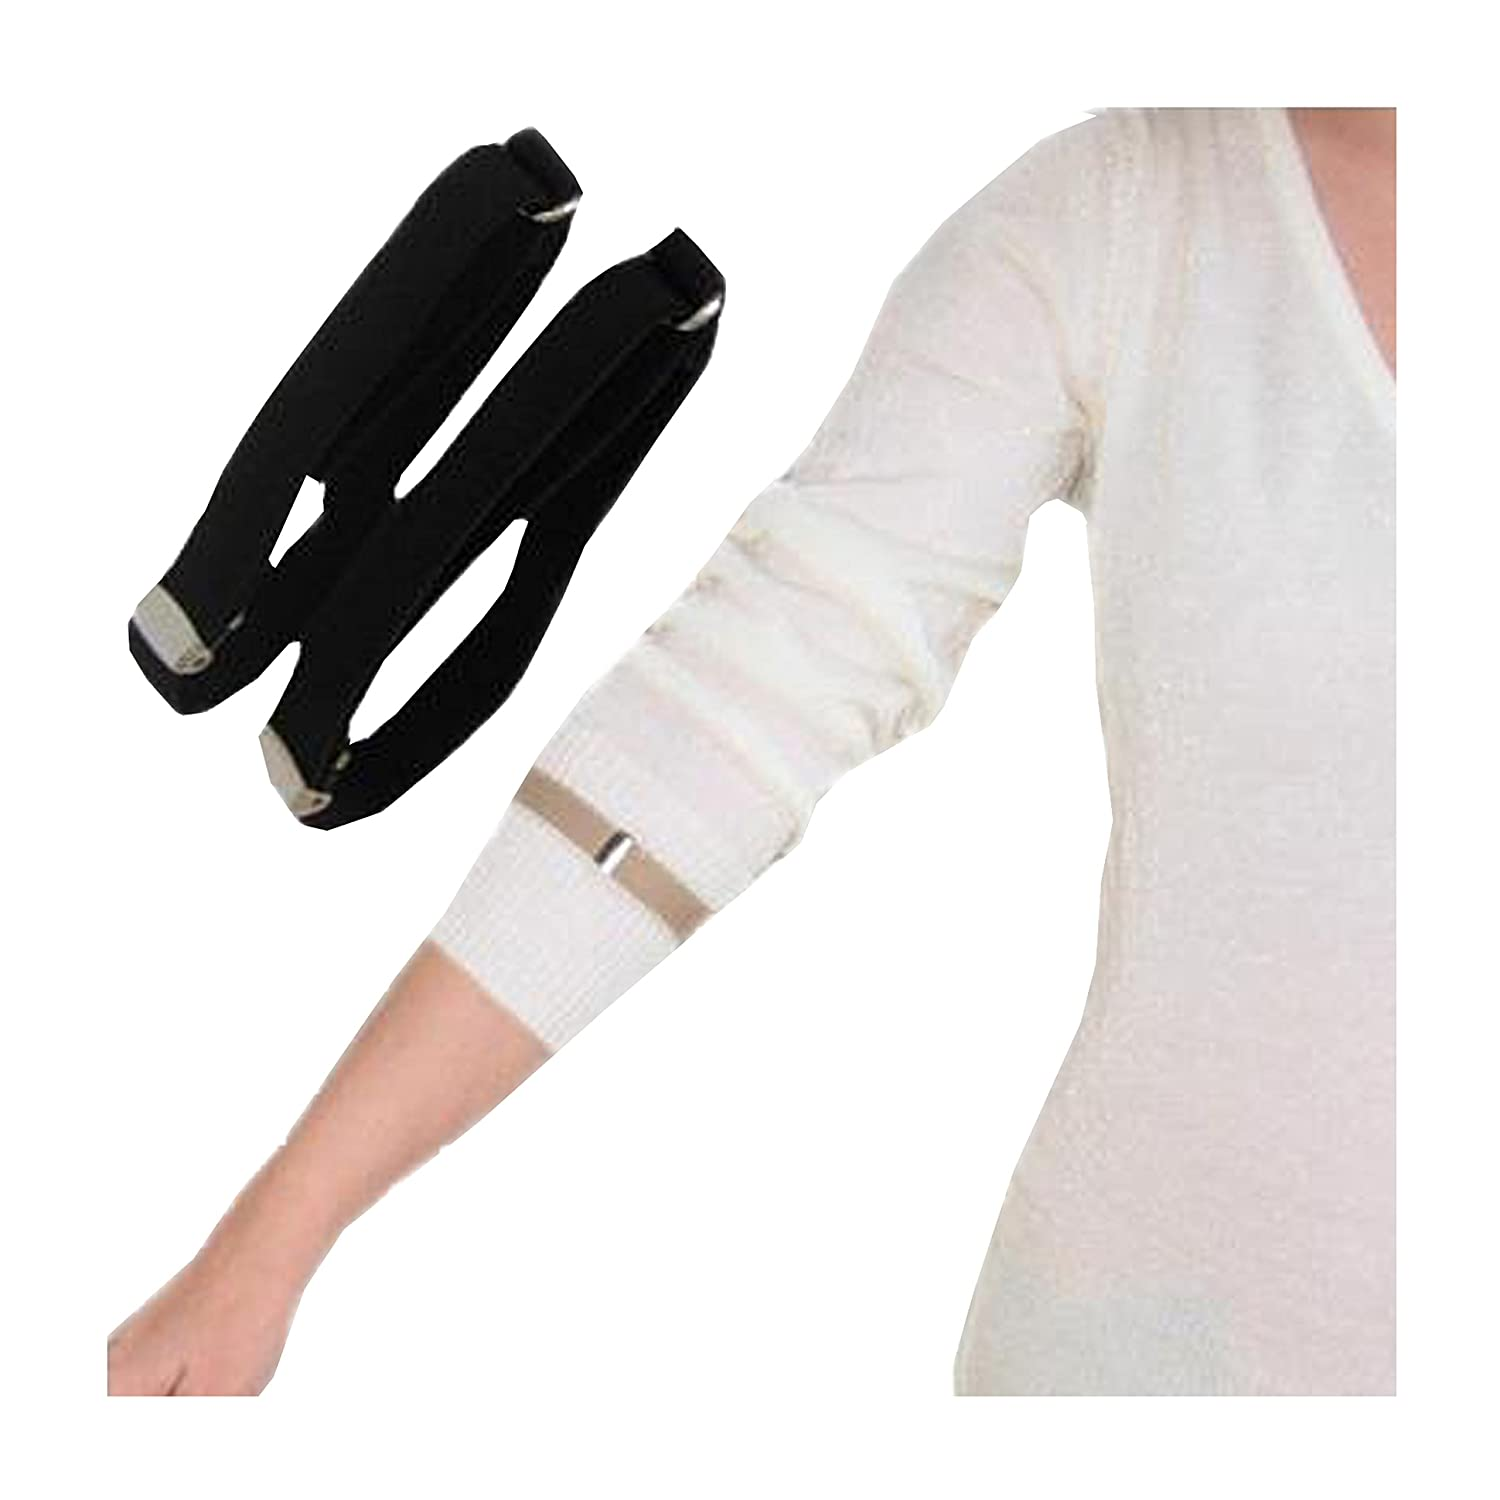 armbands elastic bands hold sleeve ups shirt ebay garters holders s itm arm